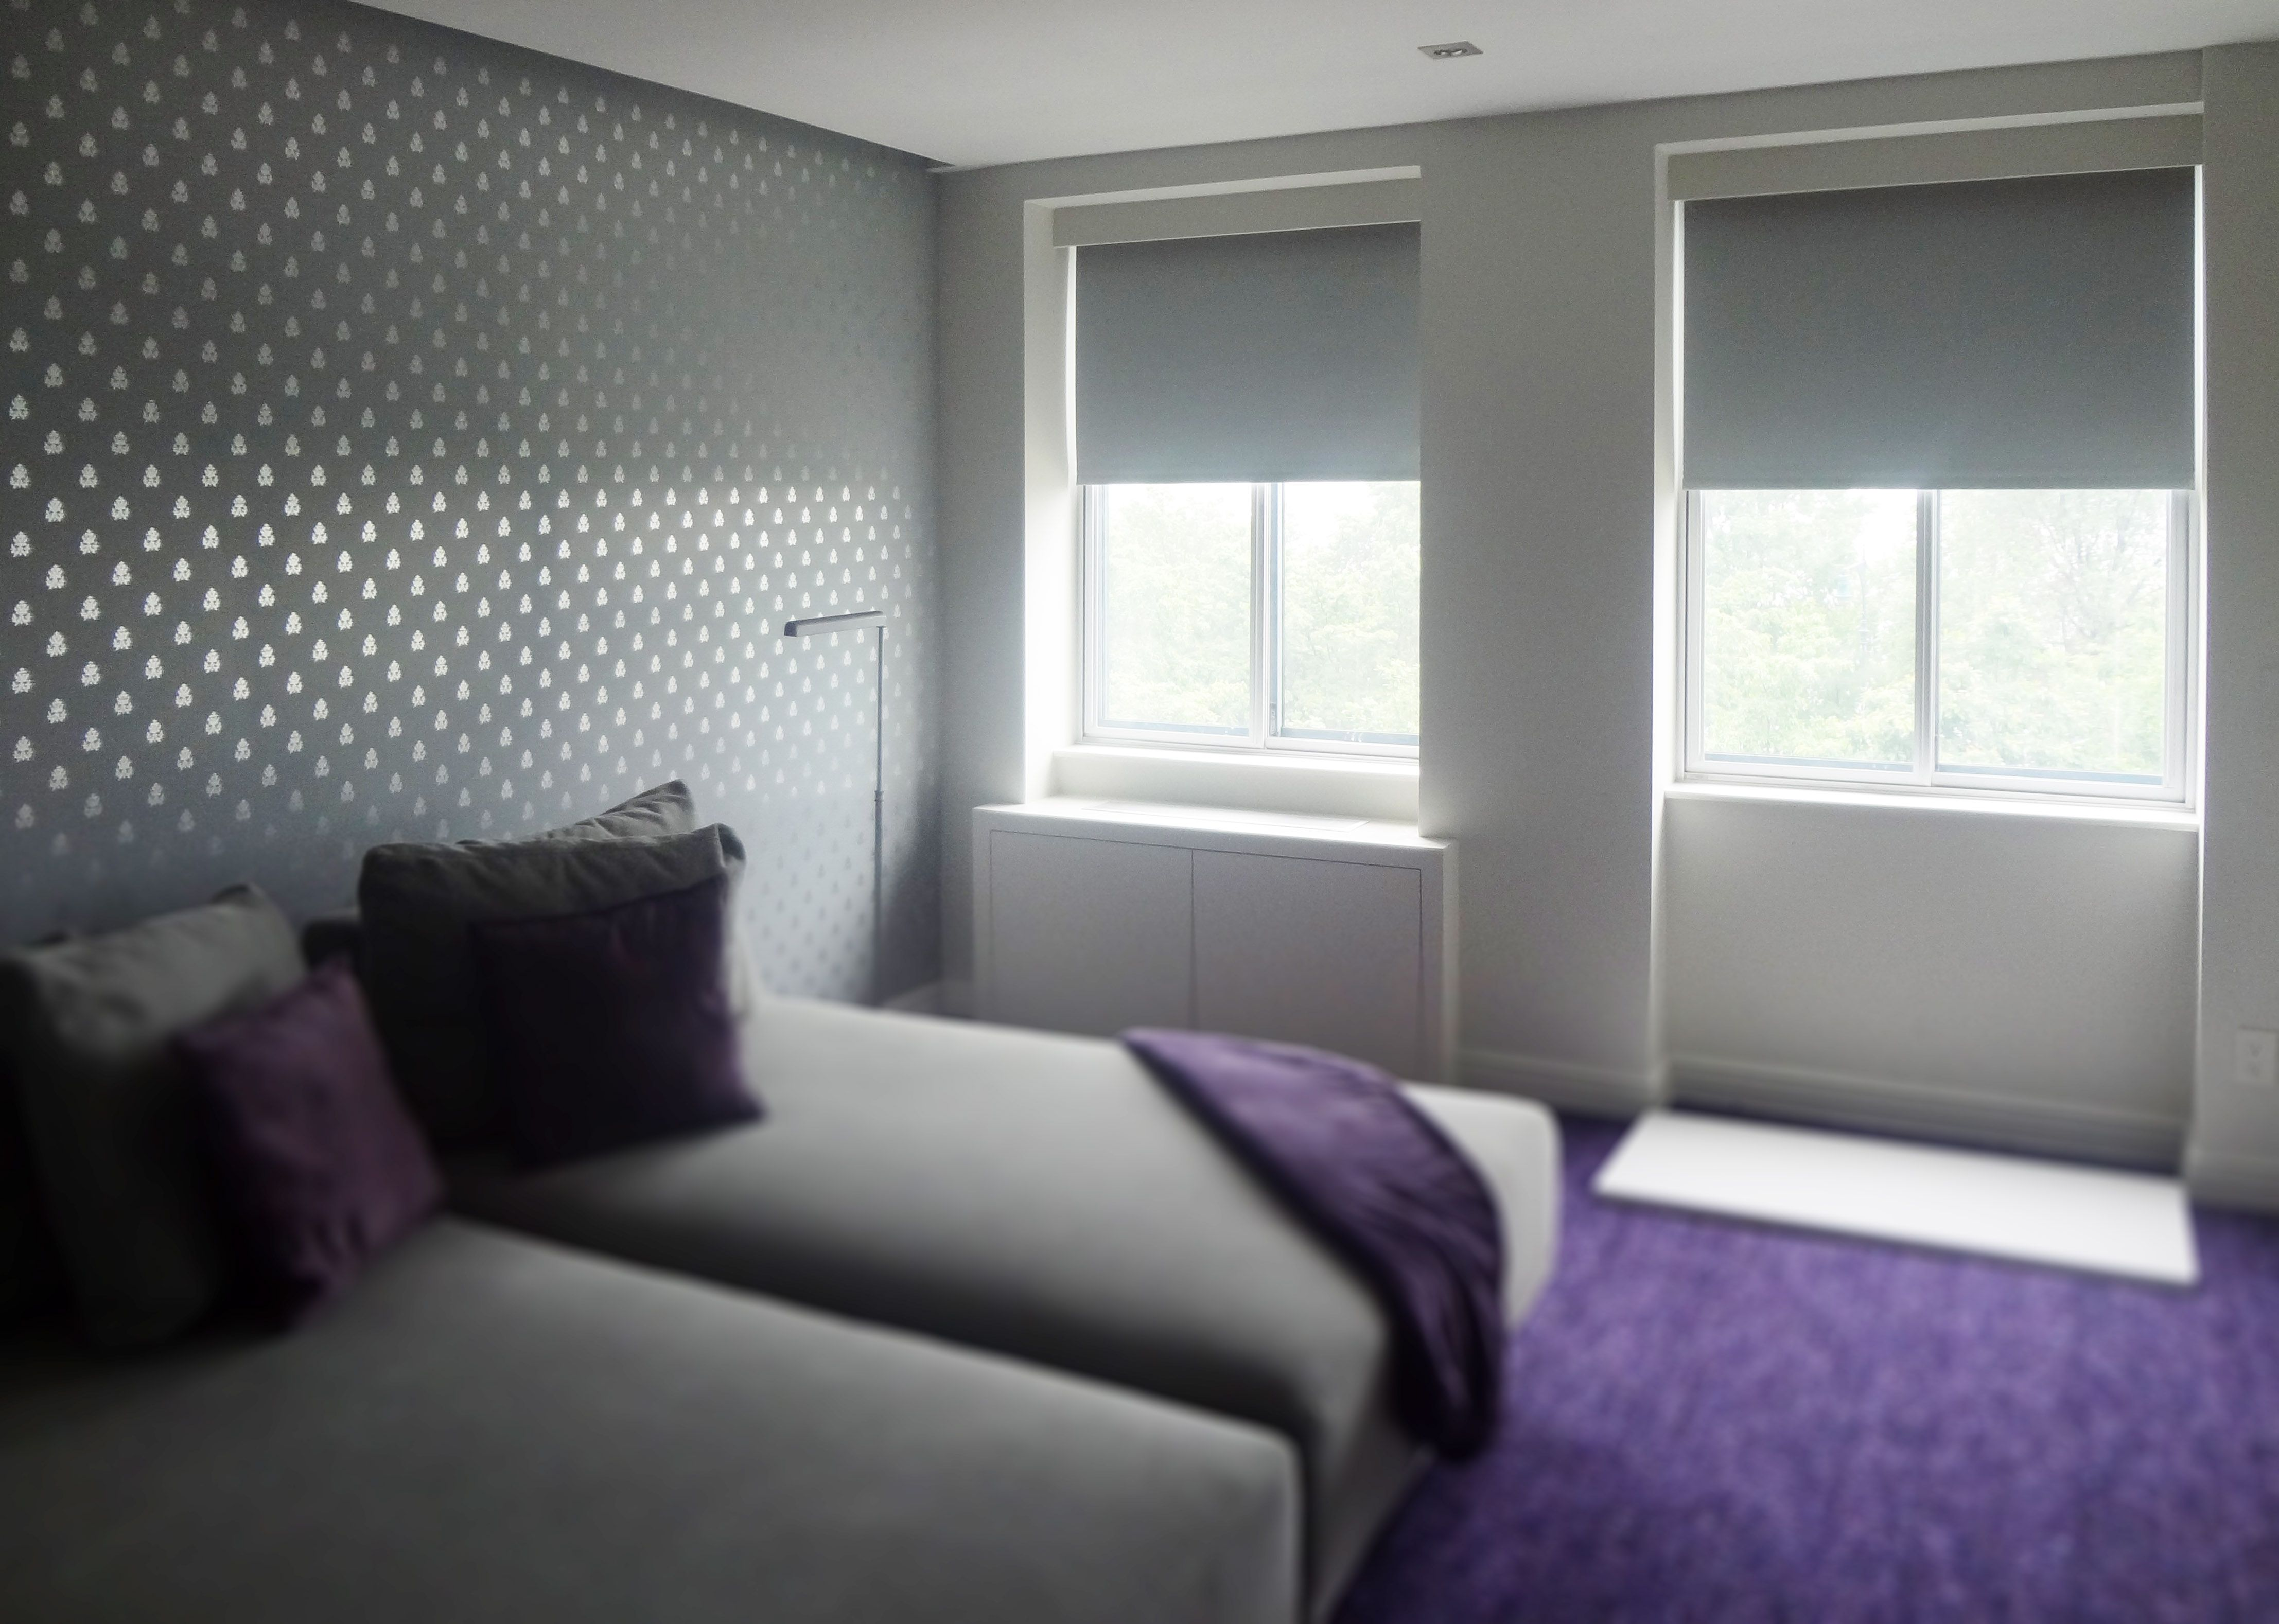 Icon of Best Blackout Blinds for Better Sleep and Privacy